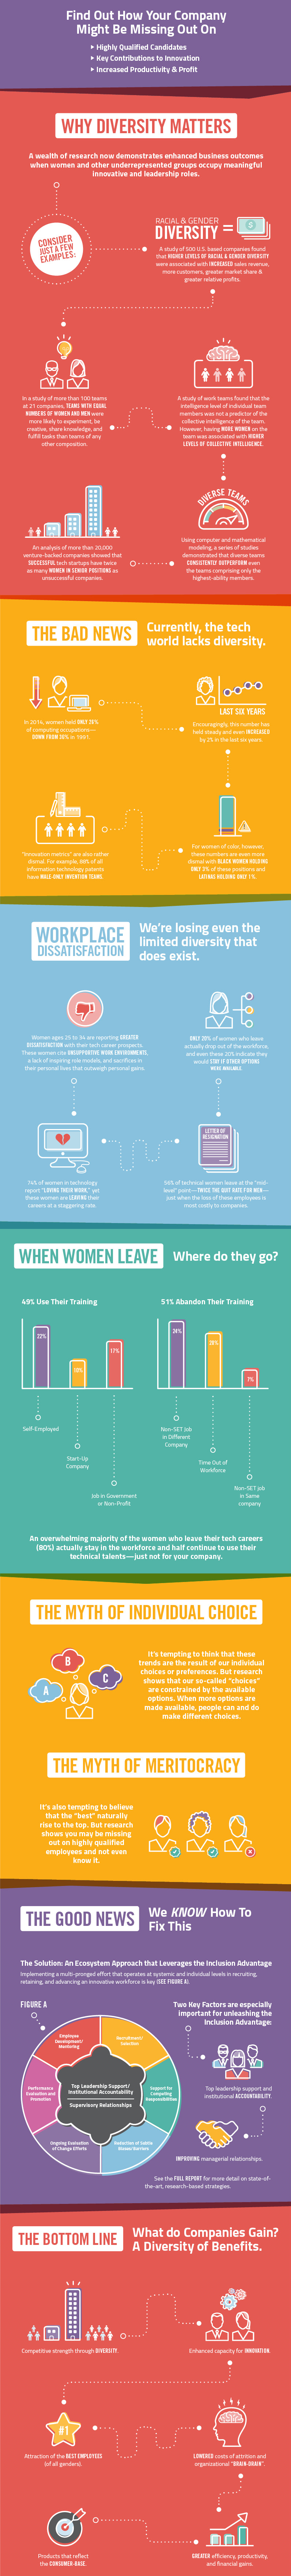 ncwit_women_in_it_4-15_webcropped.png